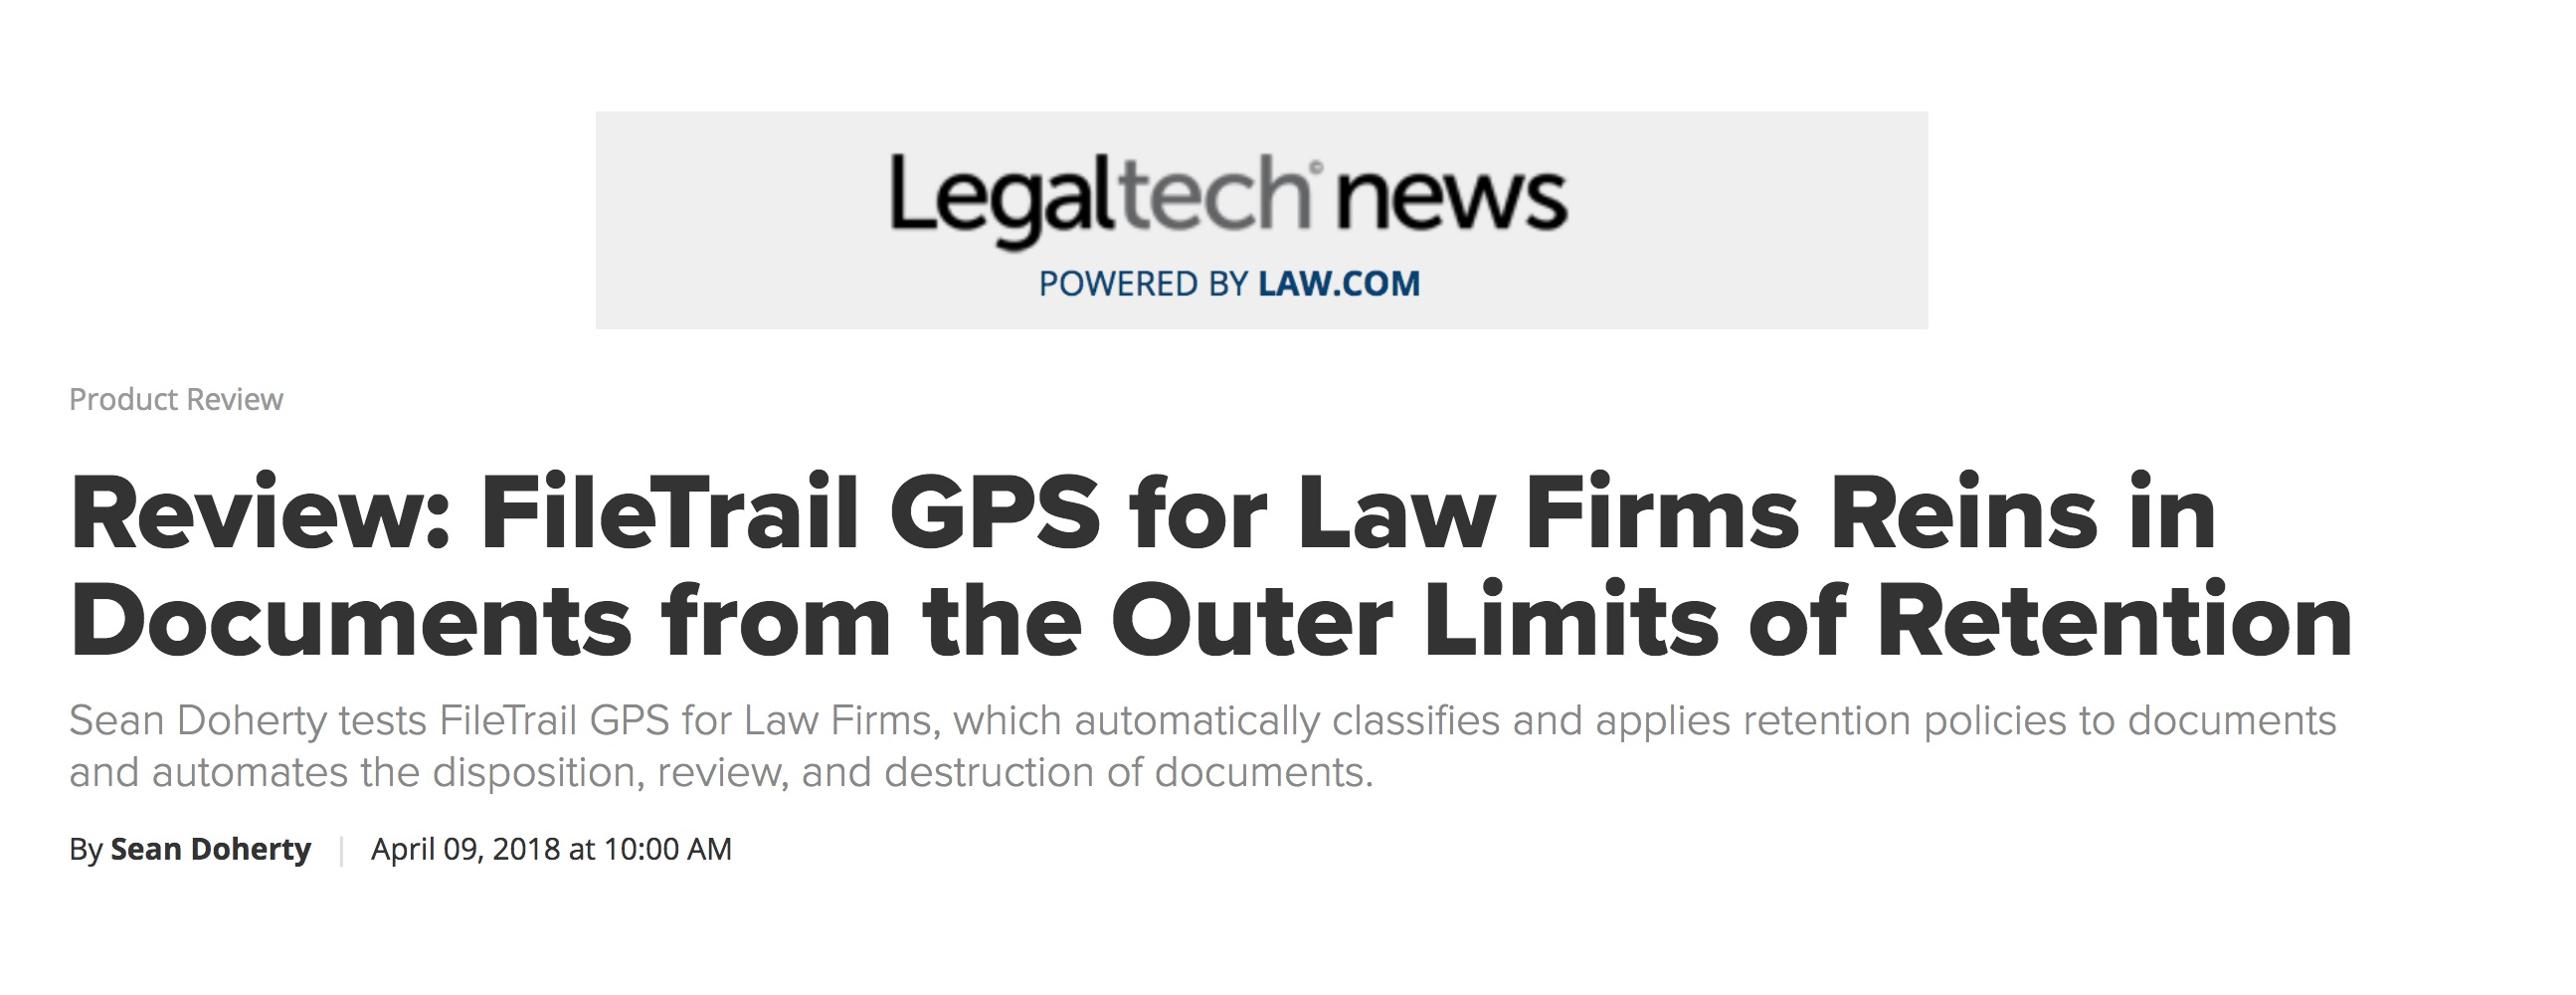 Legaltech review of GPS for law firms